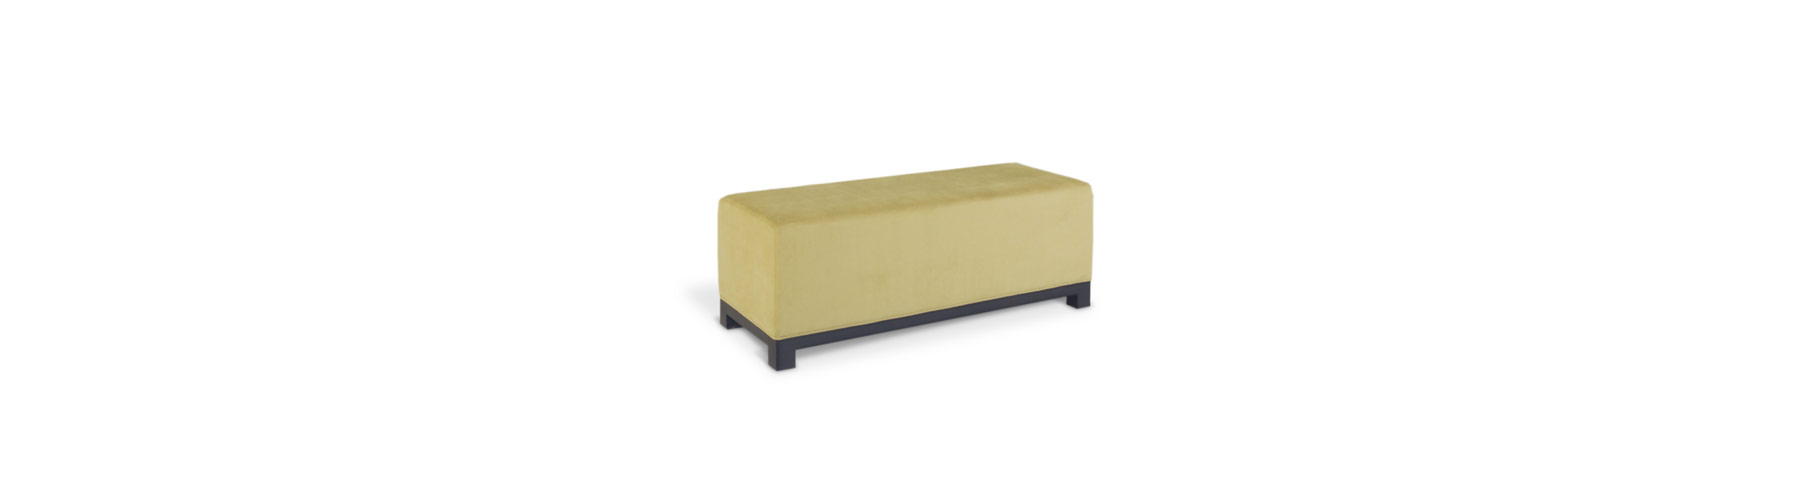 Kelly Rectangulaire - Pouf William